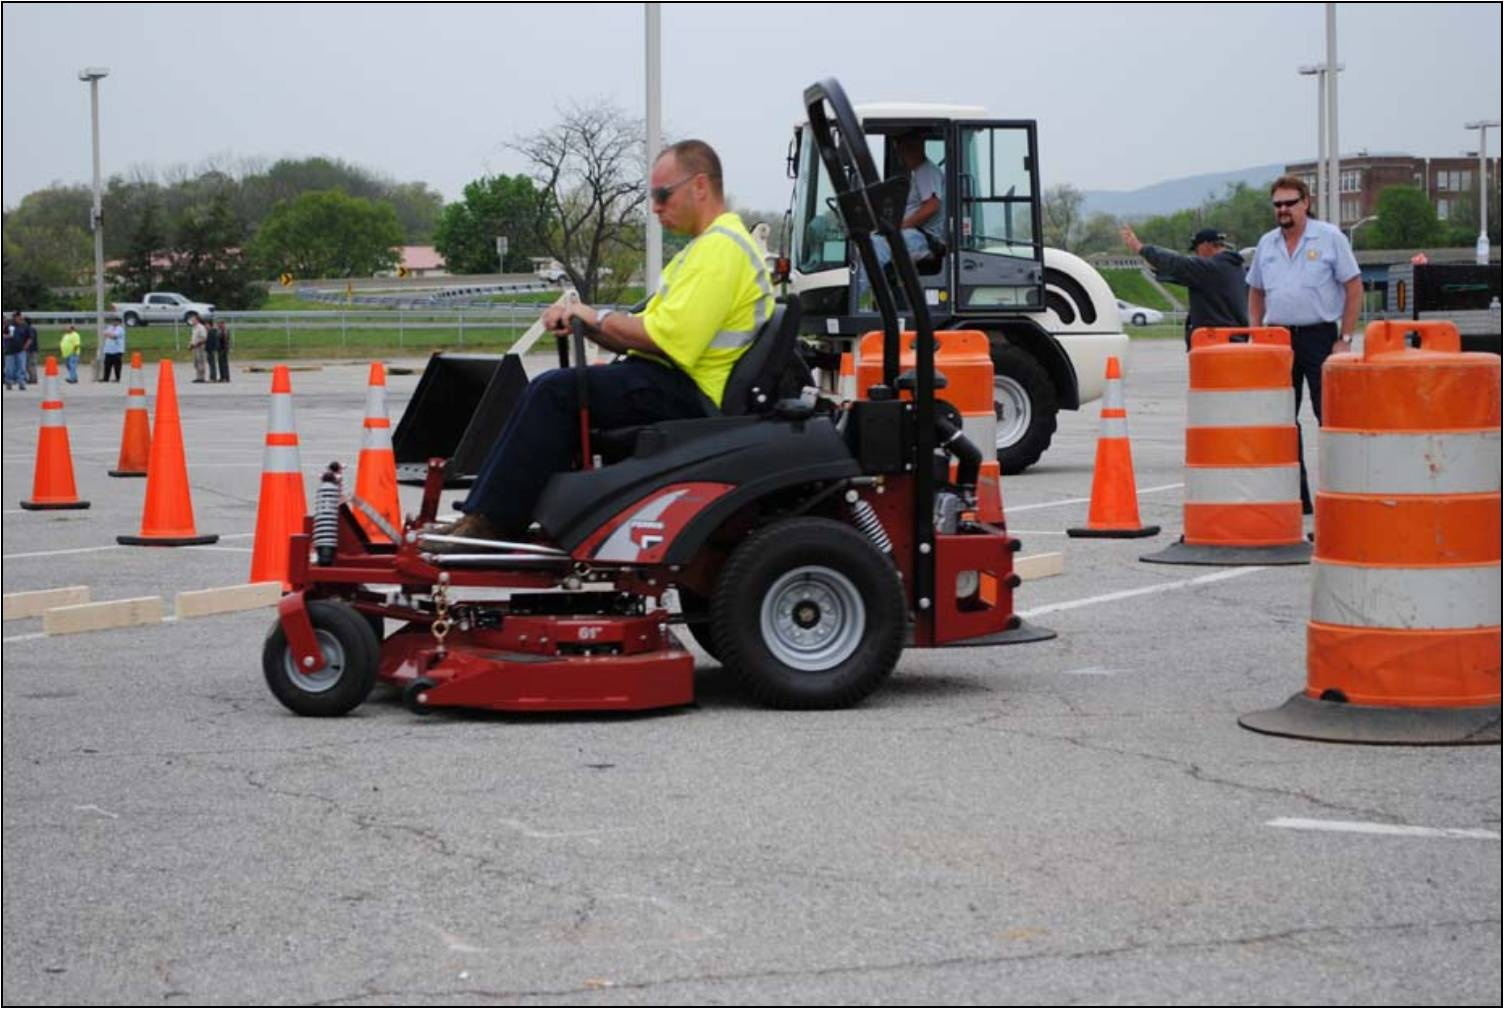 Town of Vinton sponsored the Zero Turn Mower event.